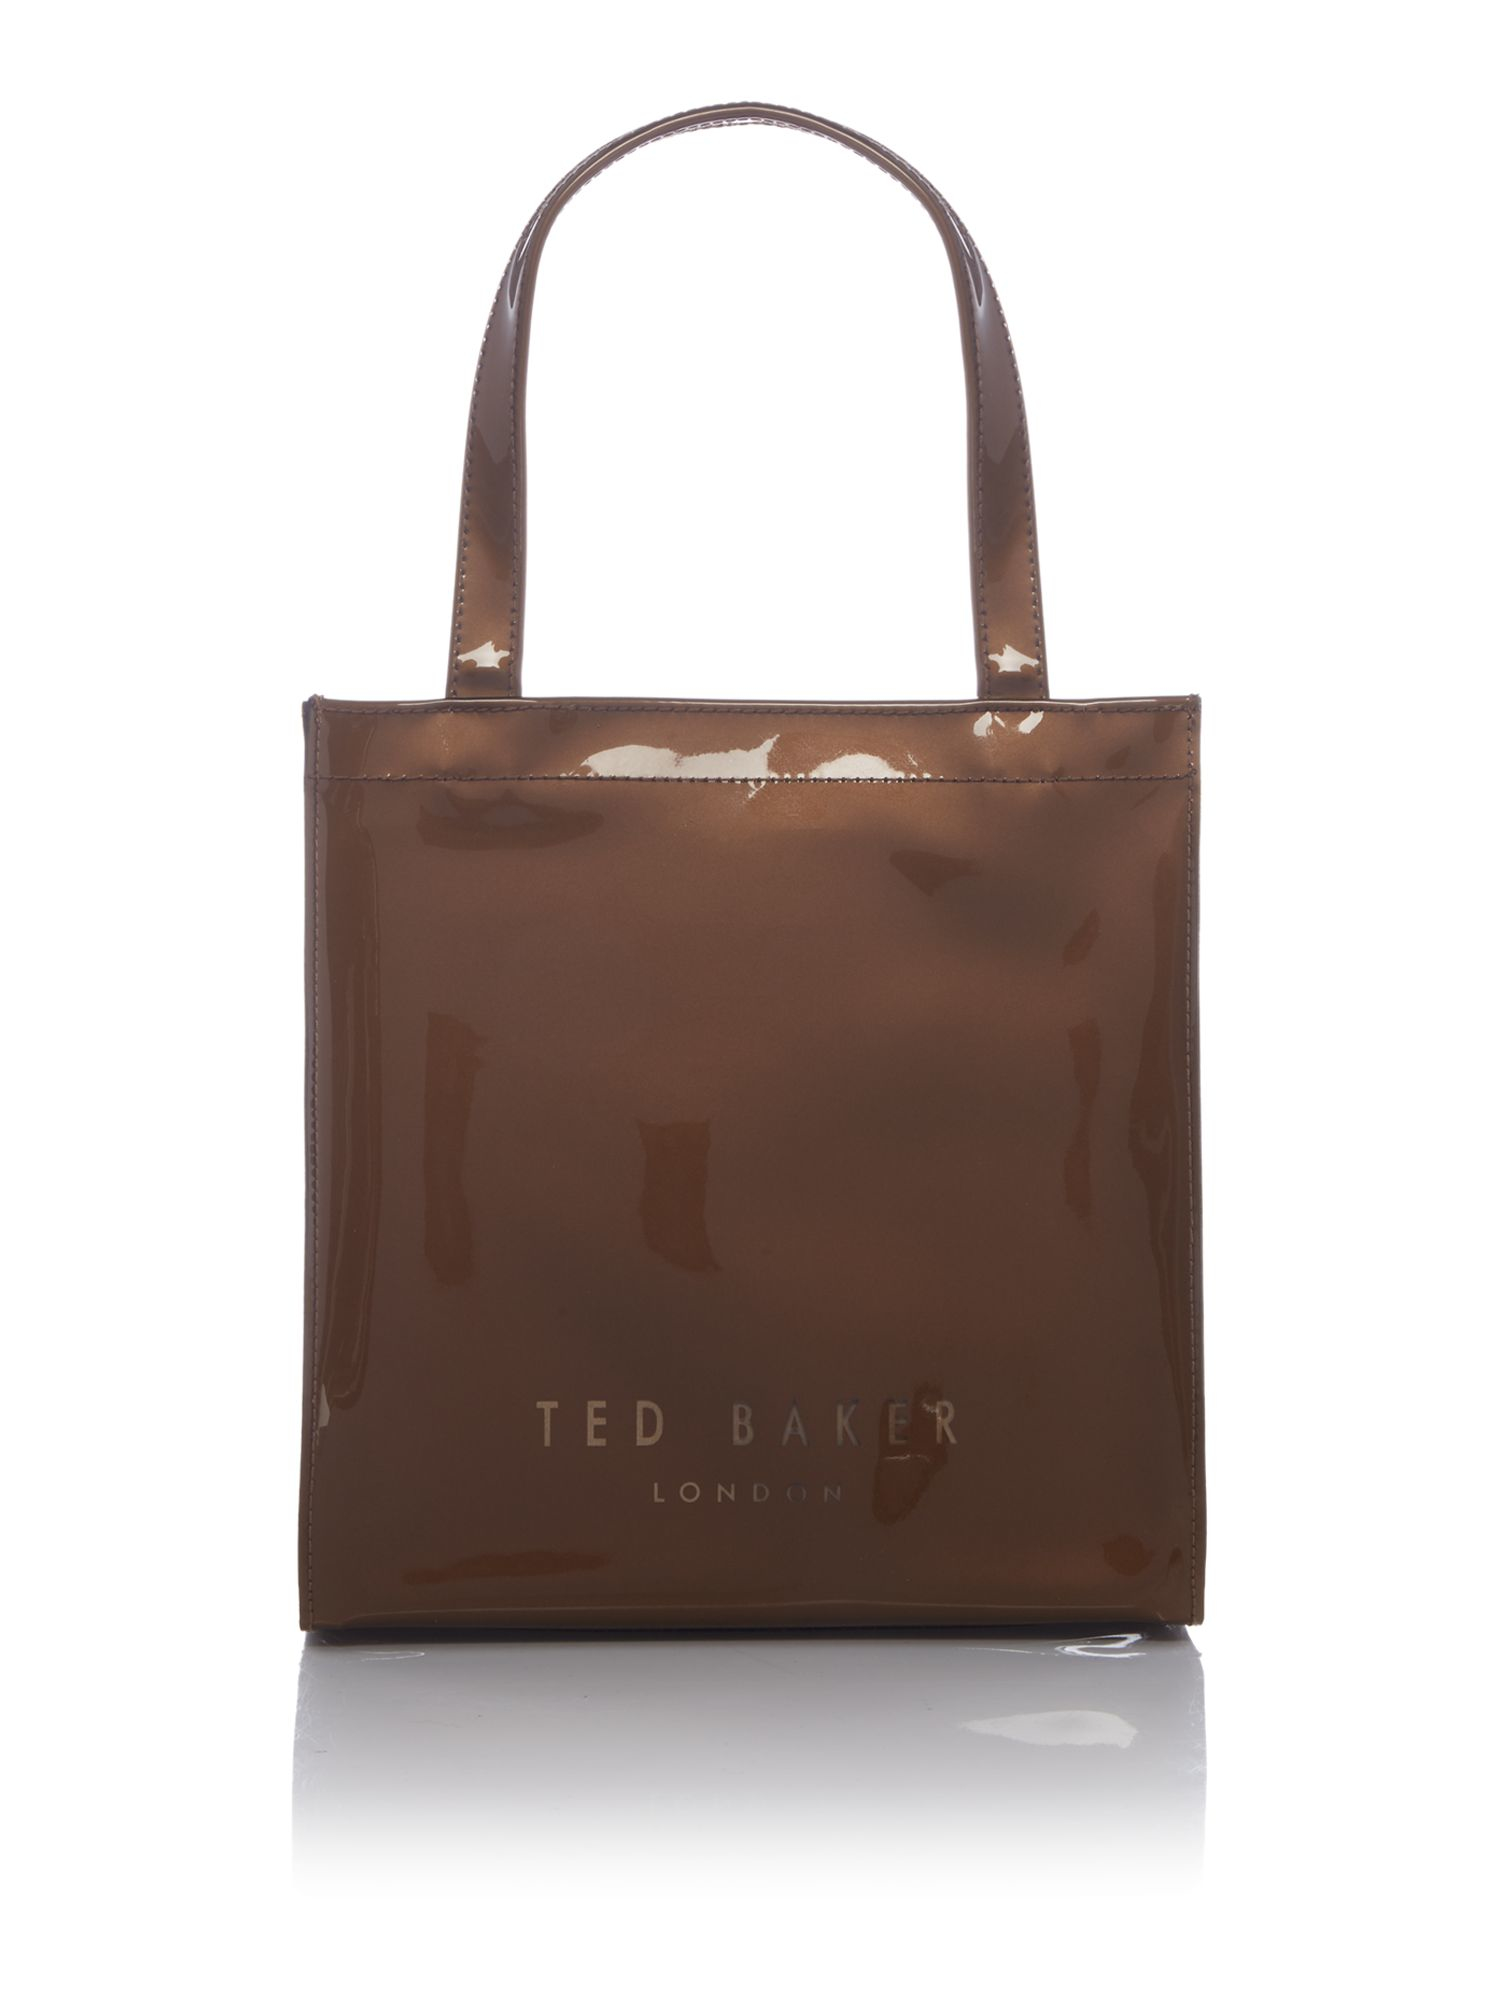 Ted Baker Sparkon Bowcon Gold Small Tote Bag in Metallic